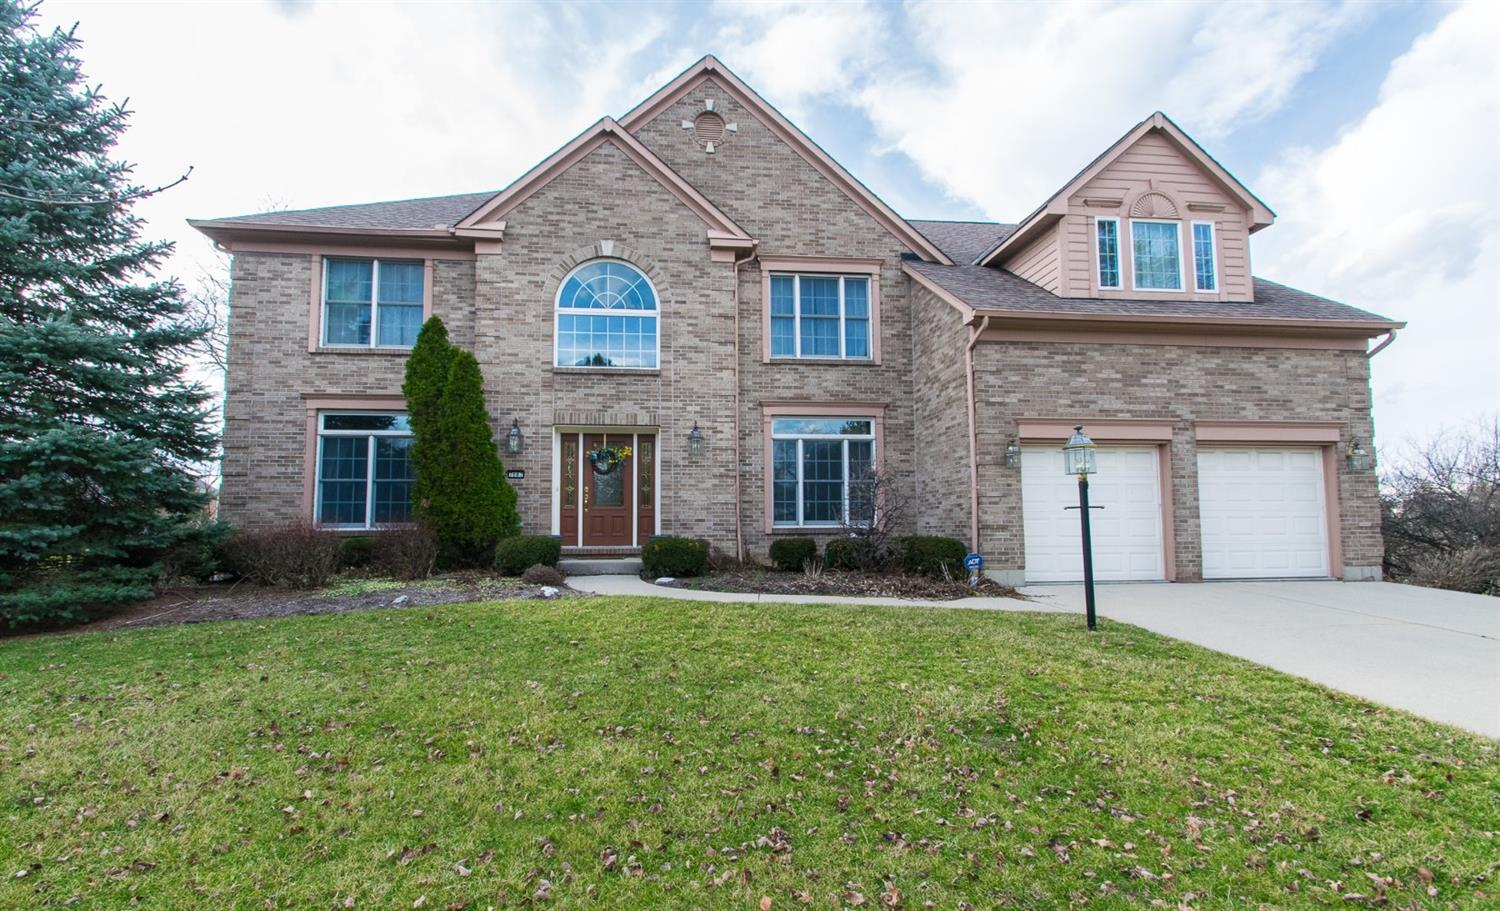 7087 Wetherington Dr West Chester - West, OH